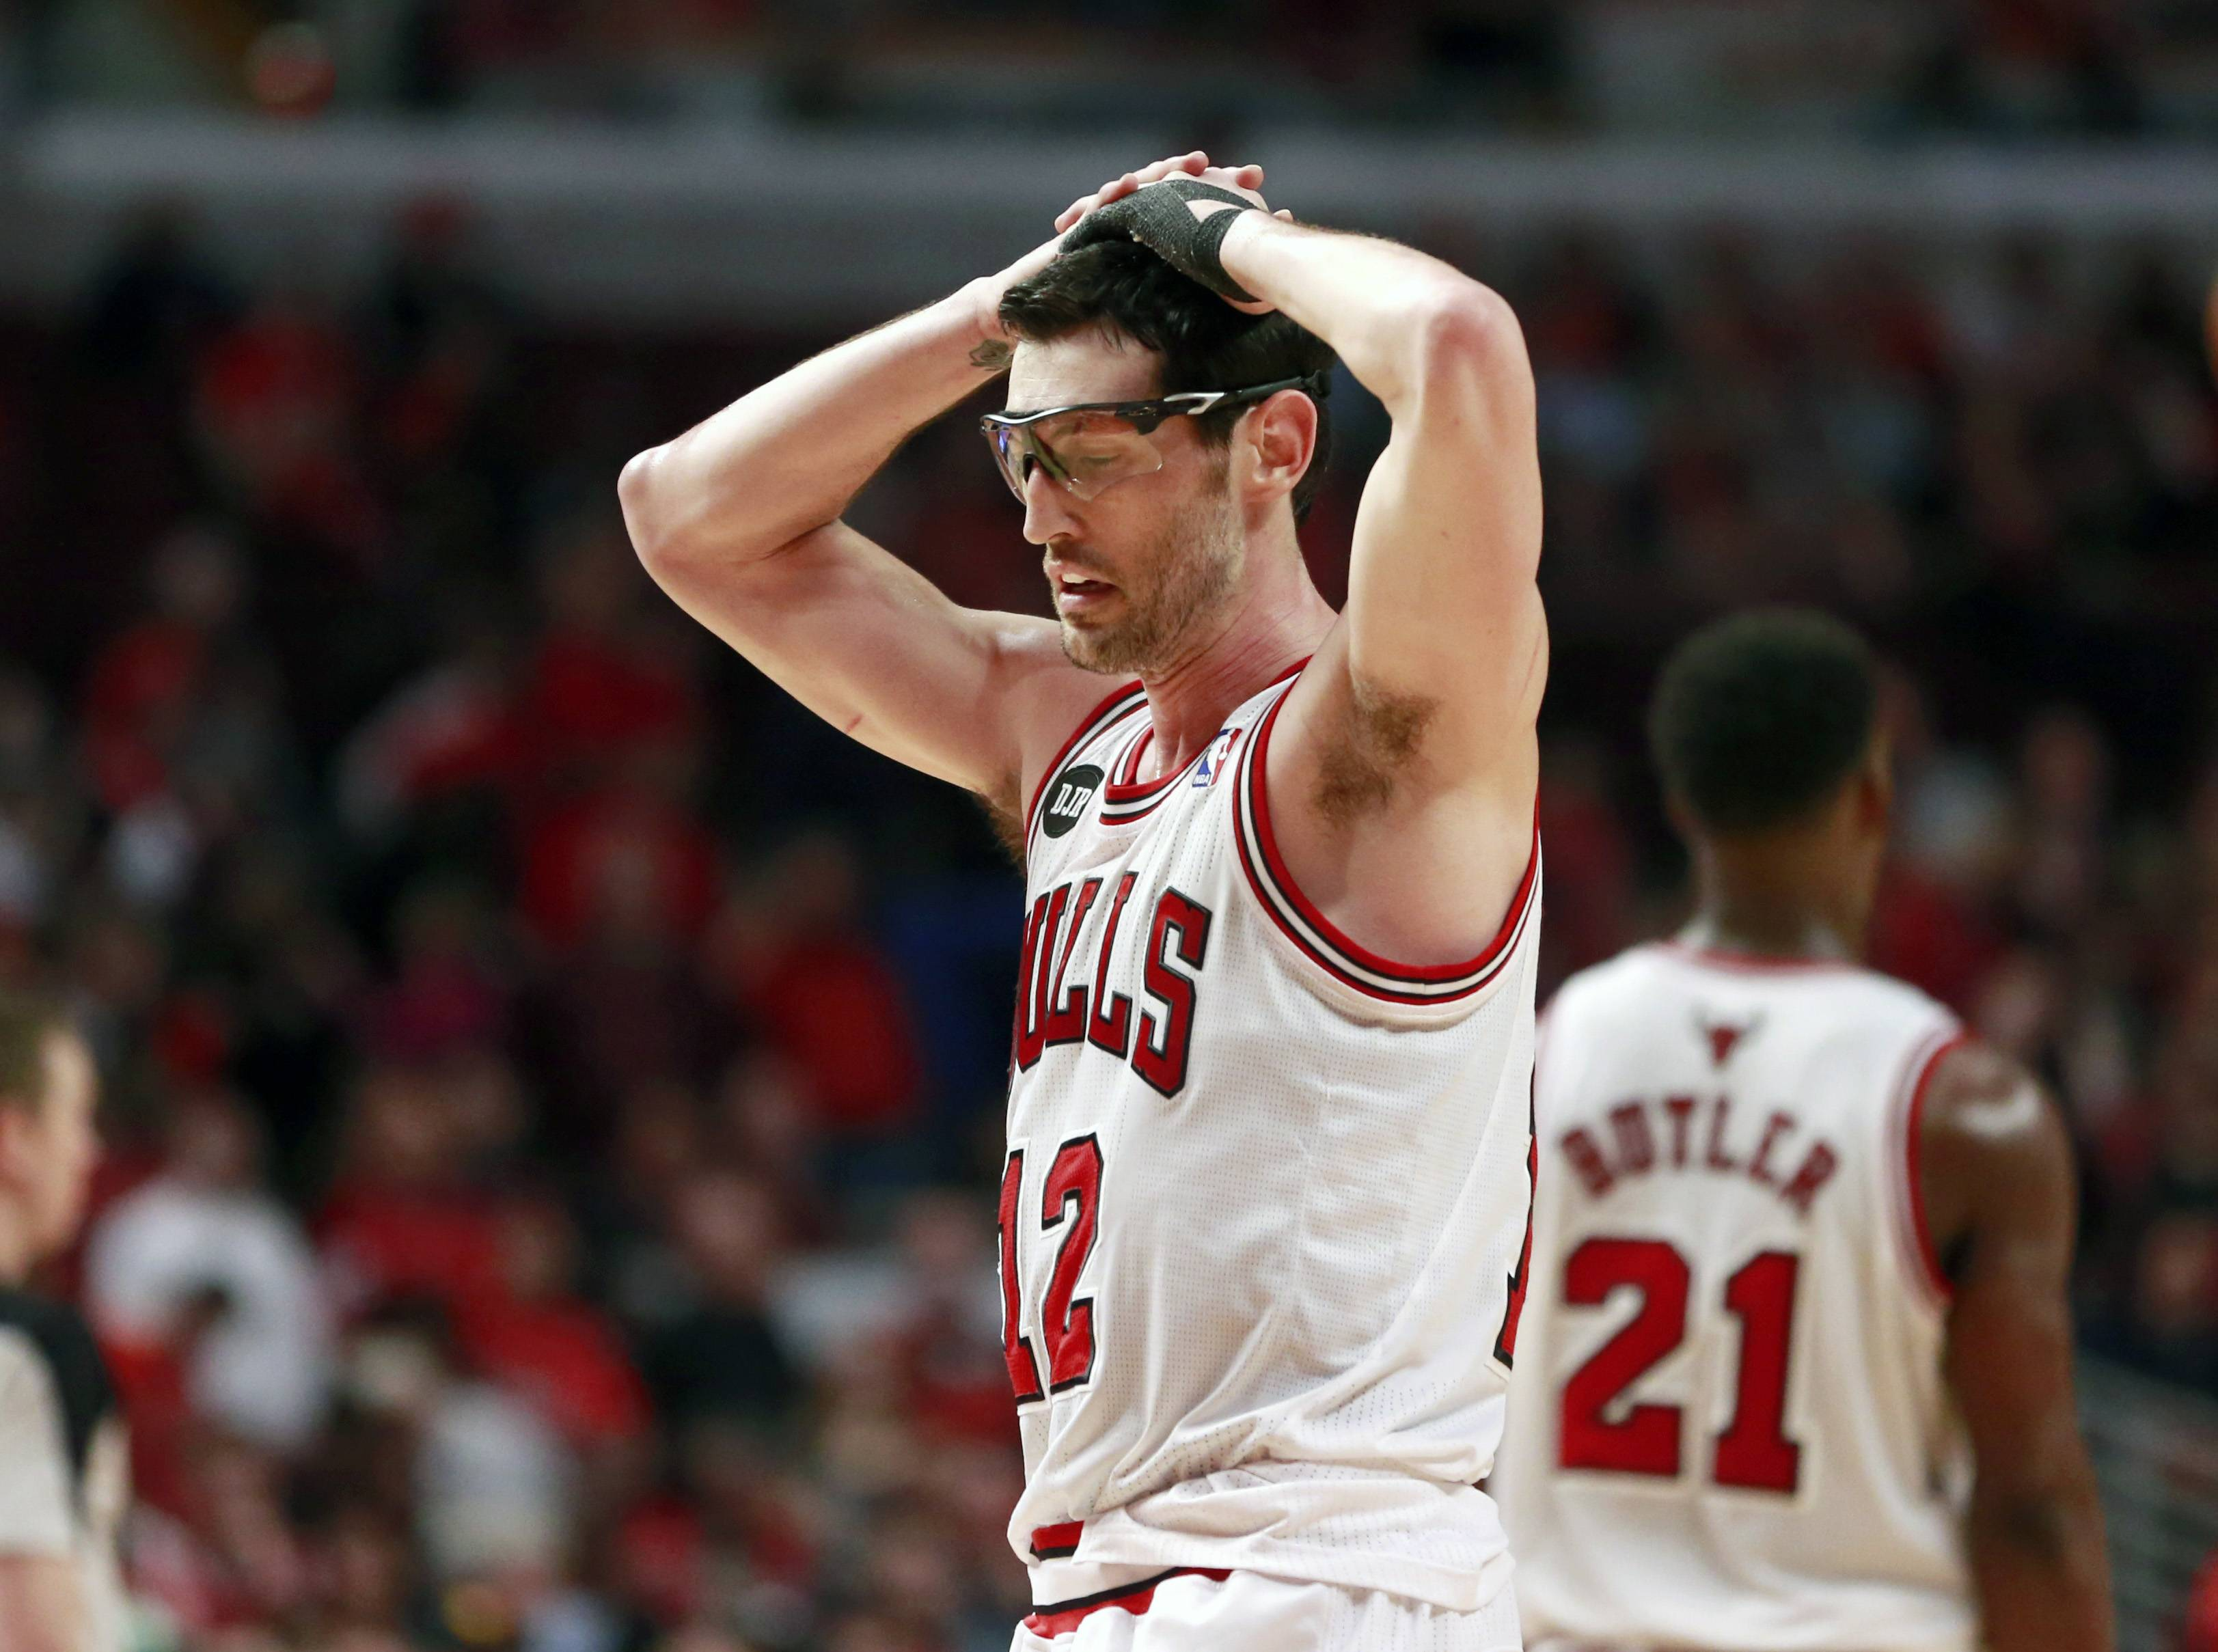 Bulls guard Kirk Hinrich puts his hands on his head after fouling out of Game 5 in an opening-round NBA basketball playoff series against the Washington Wizards, Tuesday, April 29, 2014, in Chicago. The Wizards won 75-69.